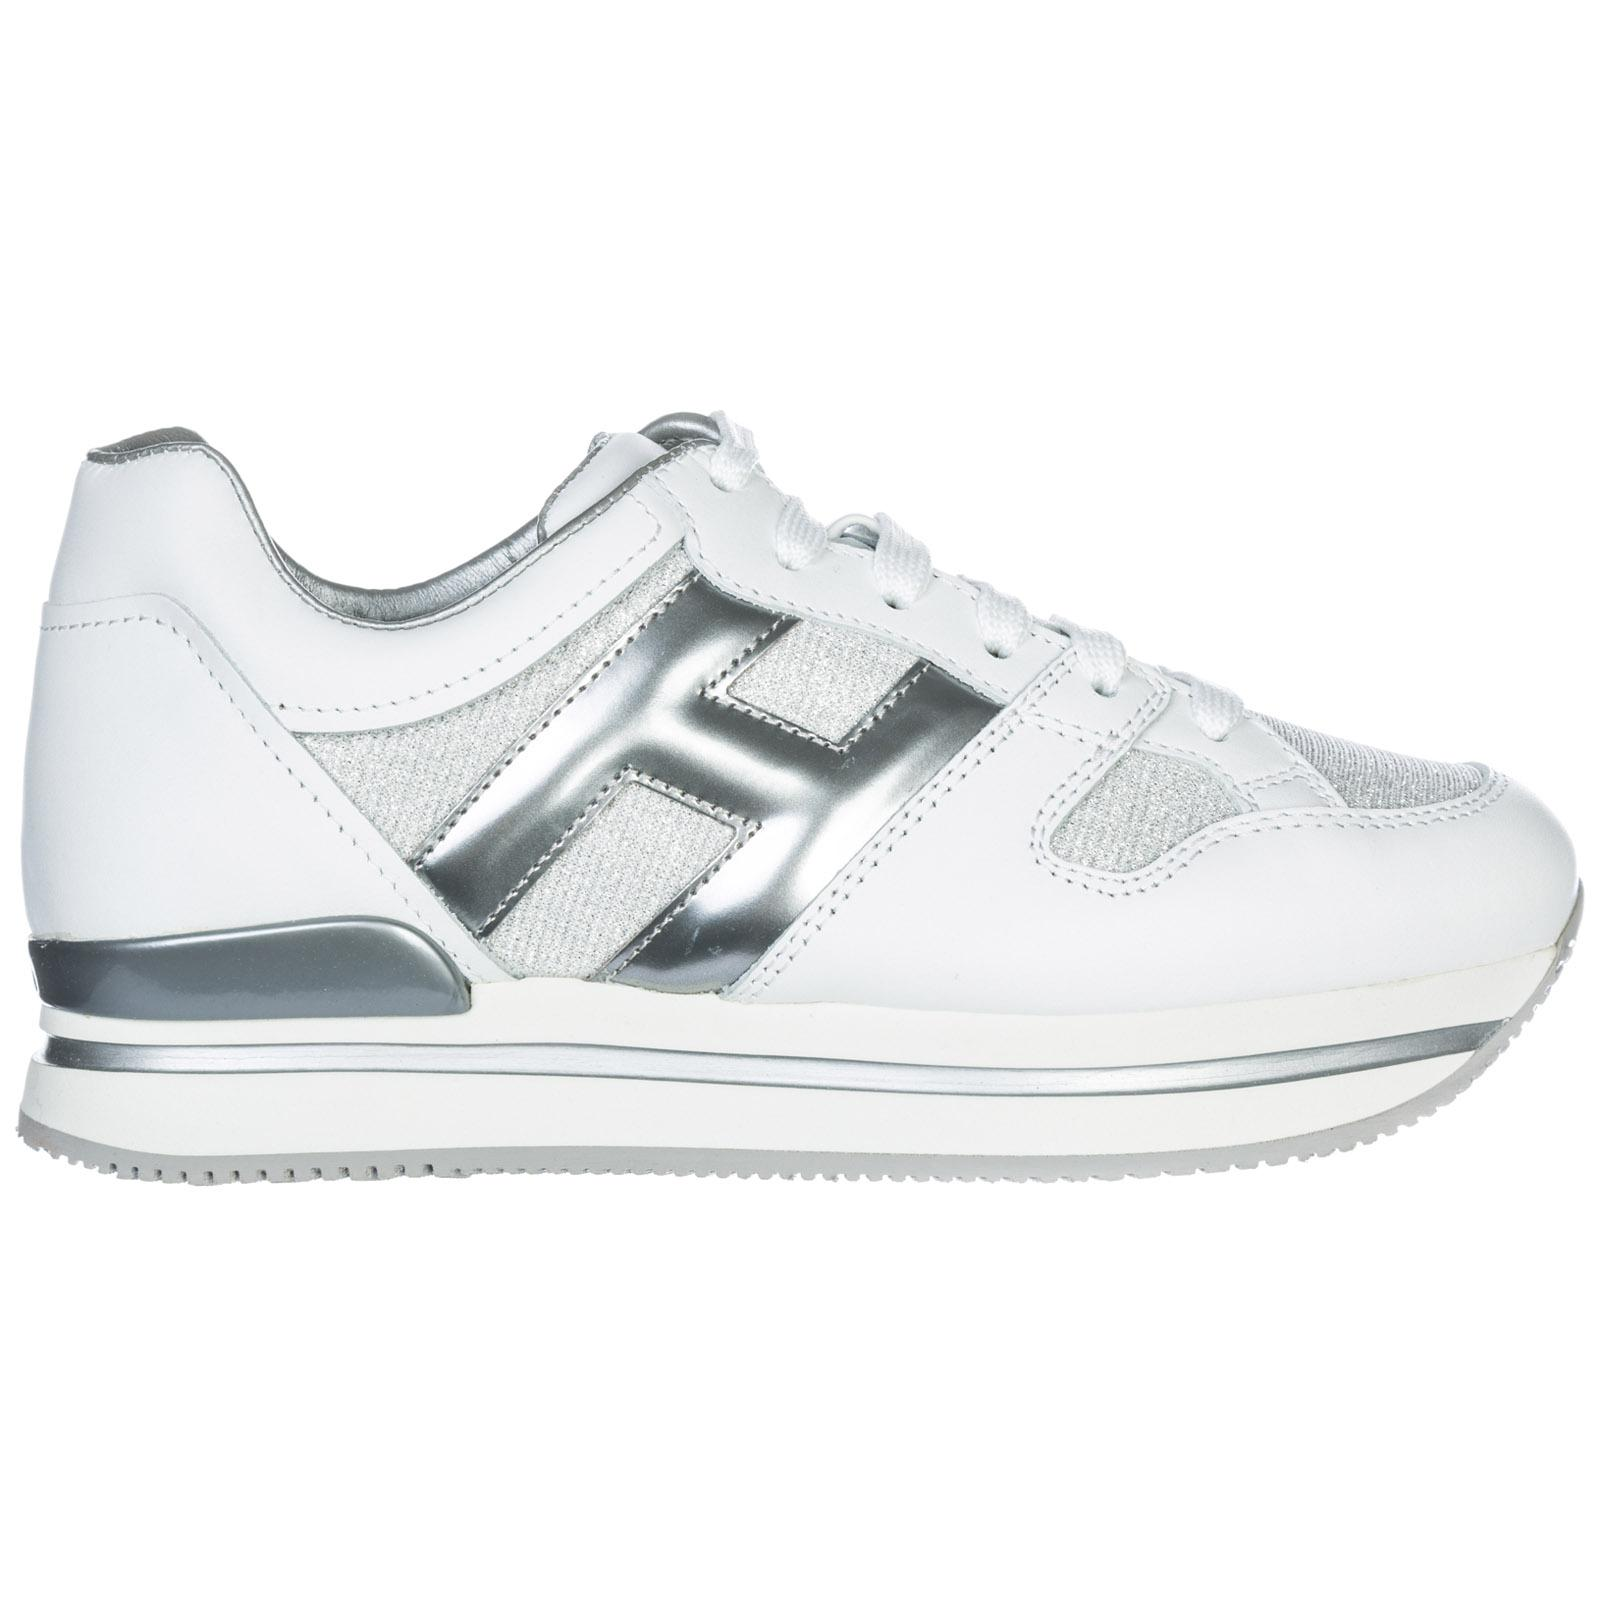 Hogan Women's Shoes Leather Trainers Sneakers H222 In White